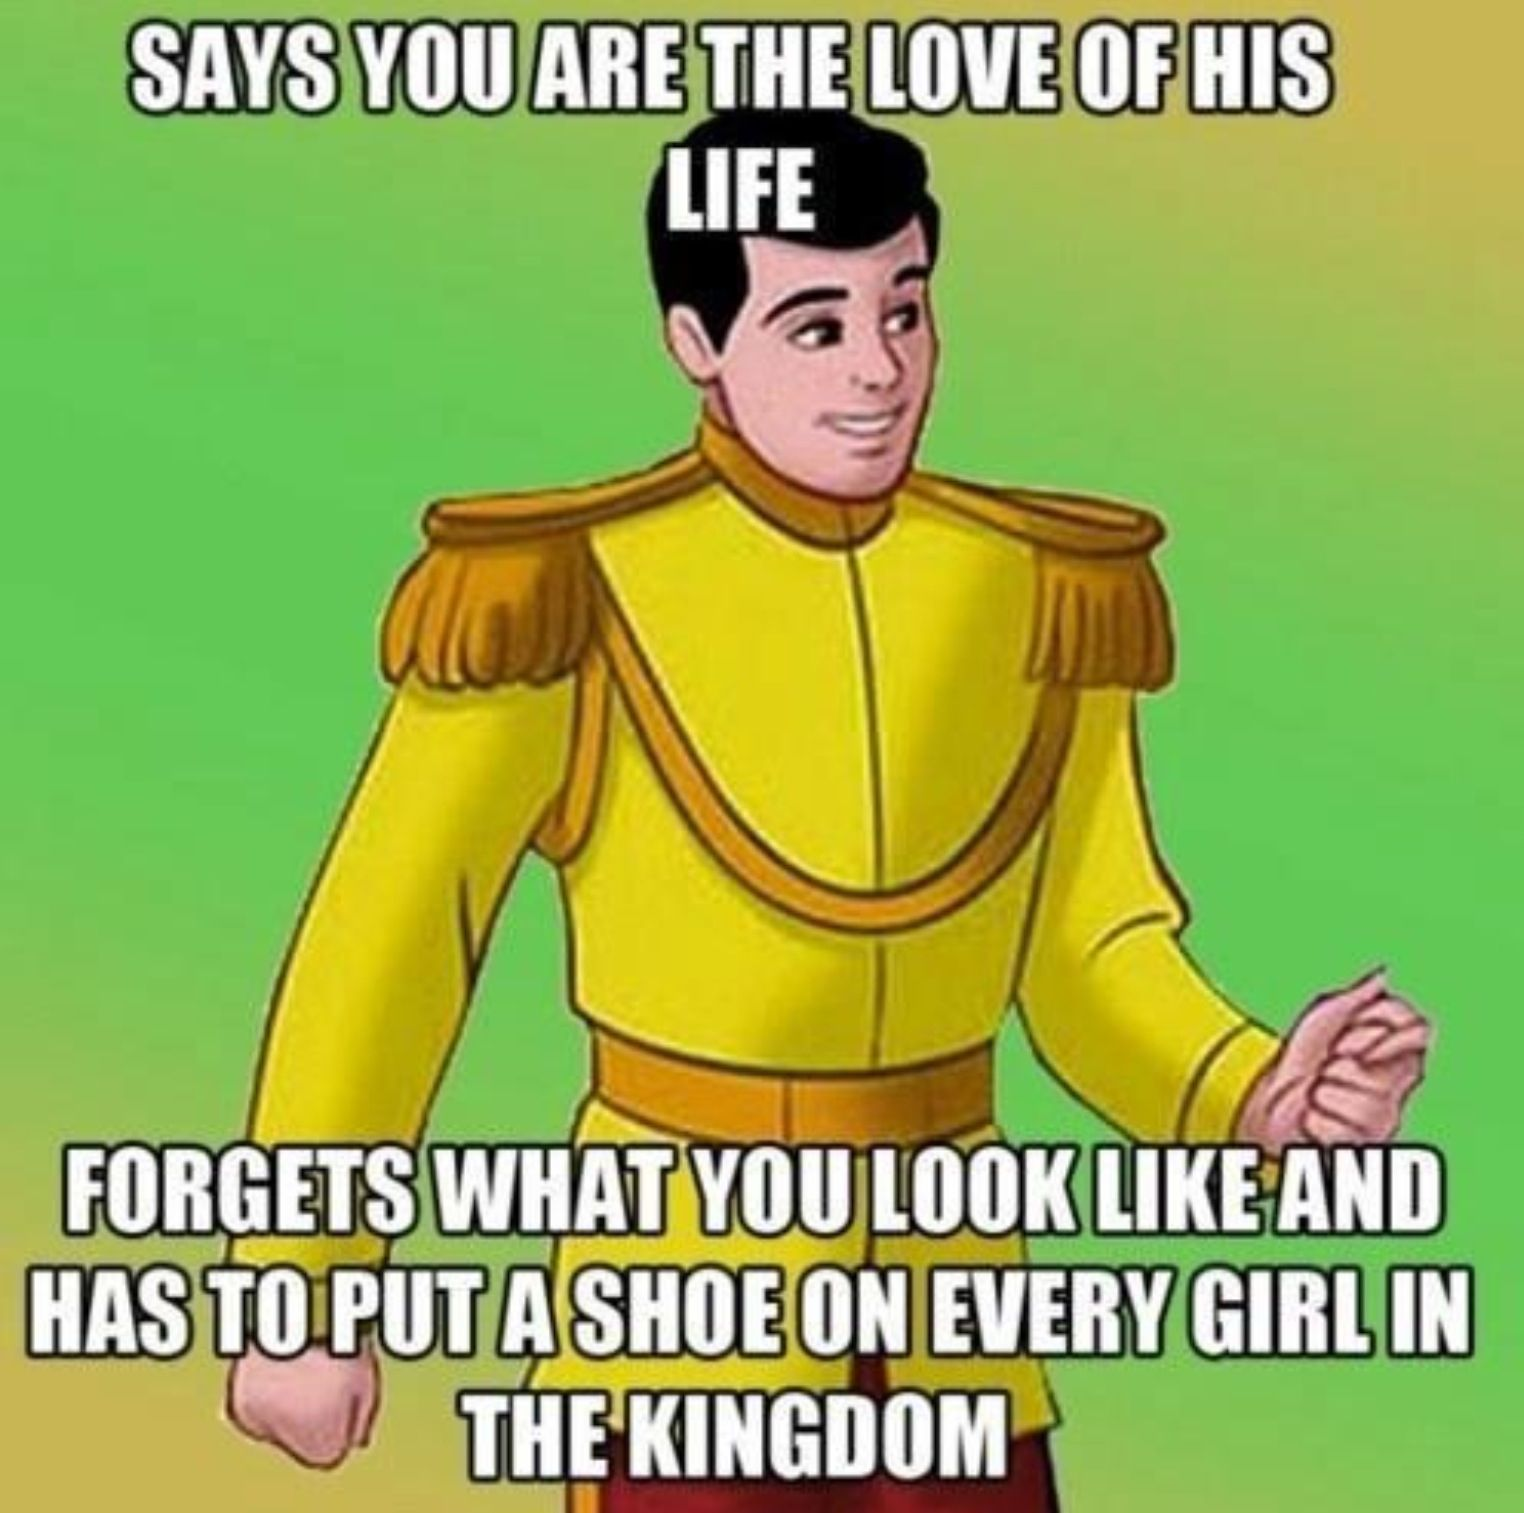 Funny Meme Disney : Never thought about it that way pinterestingly funny